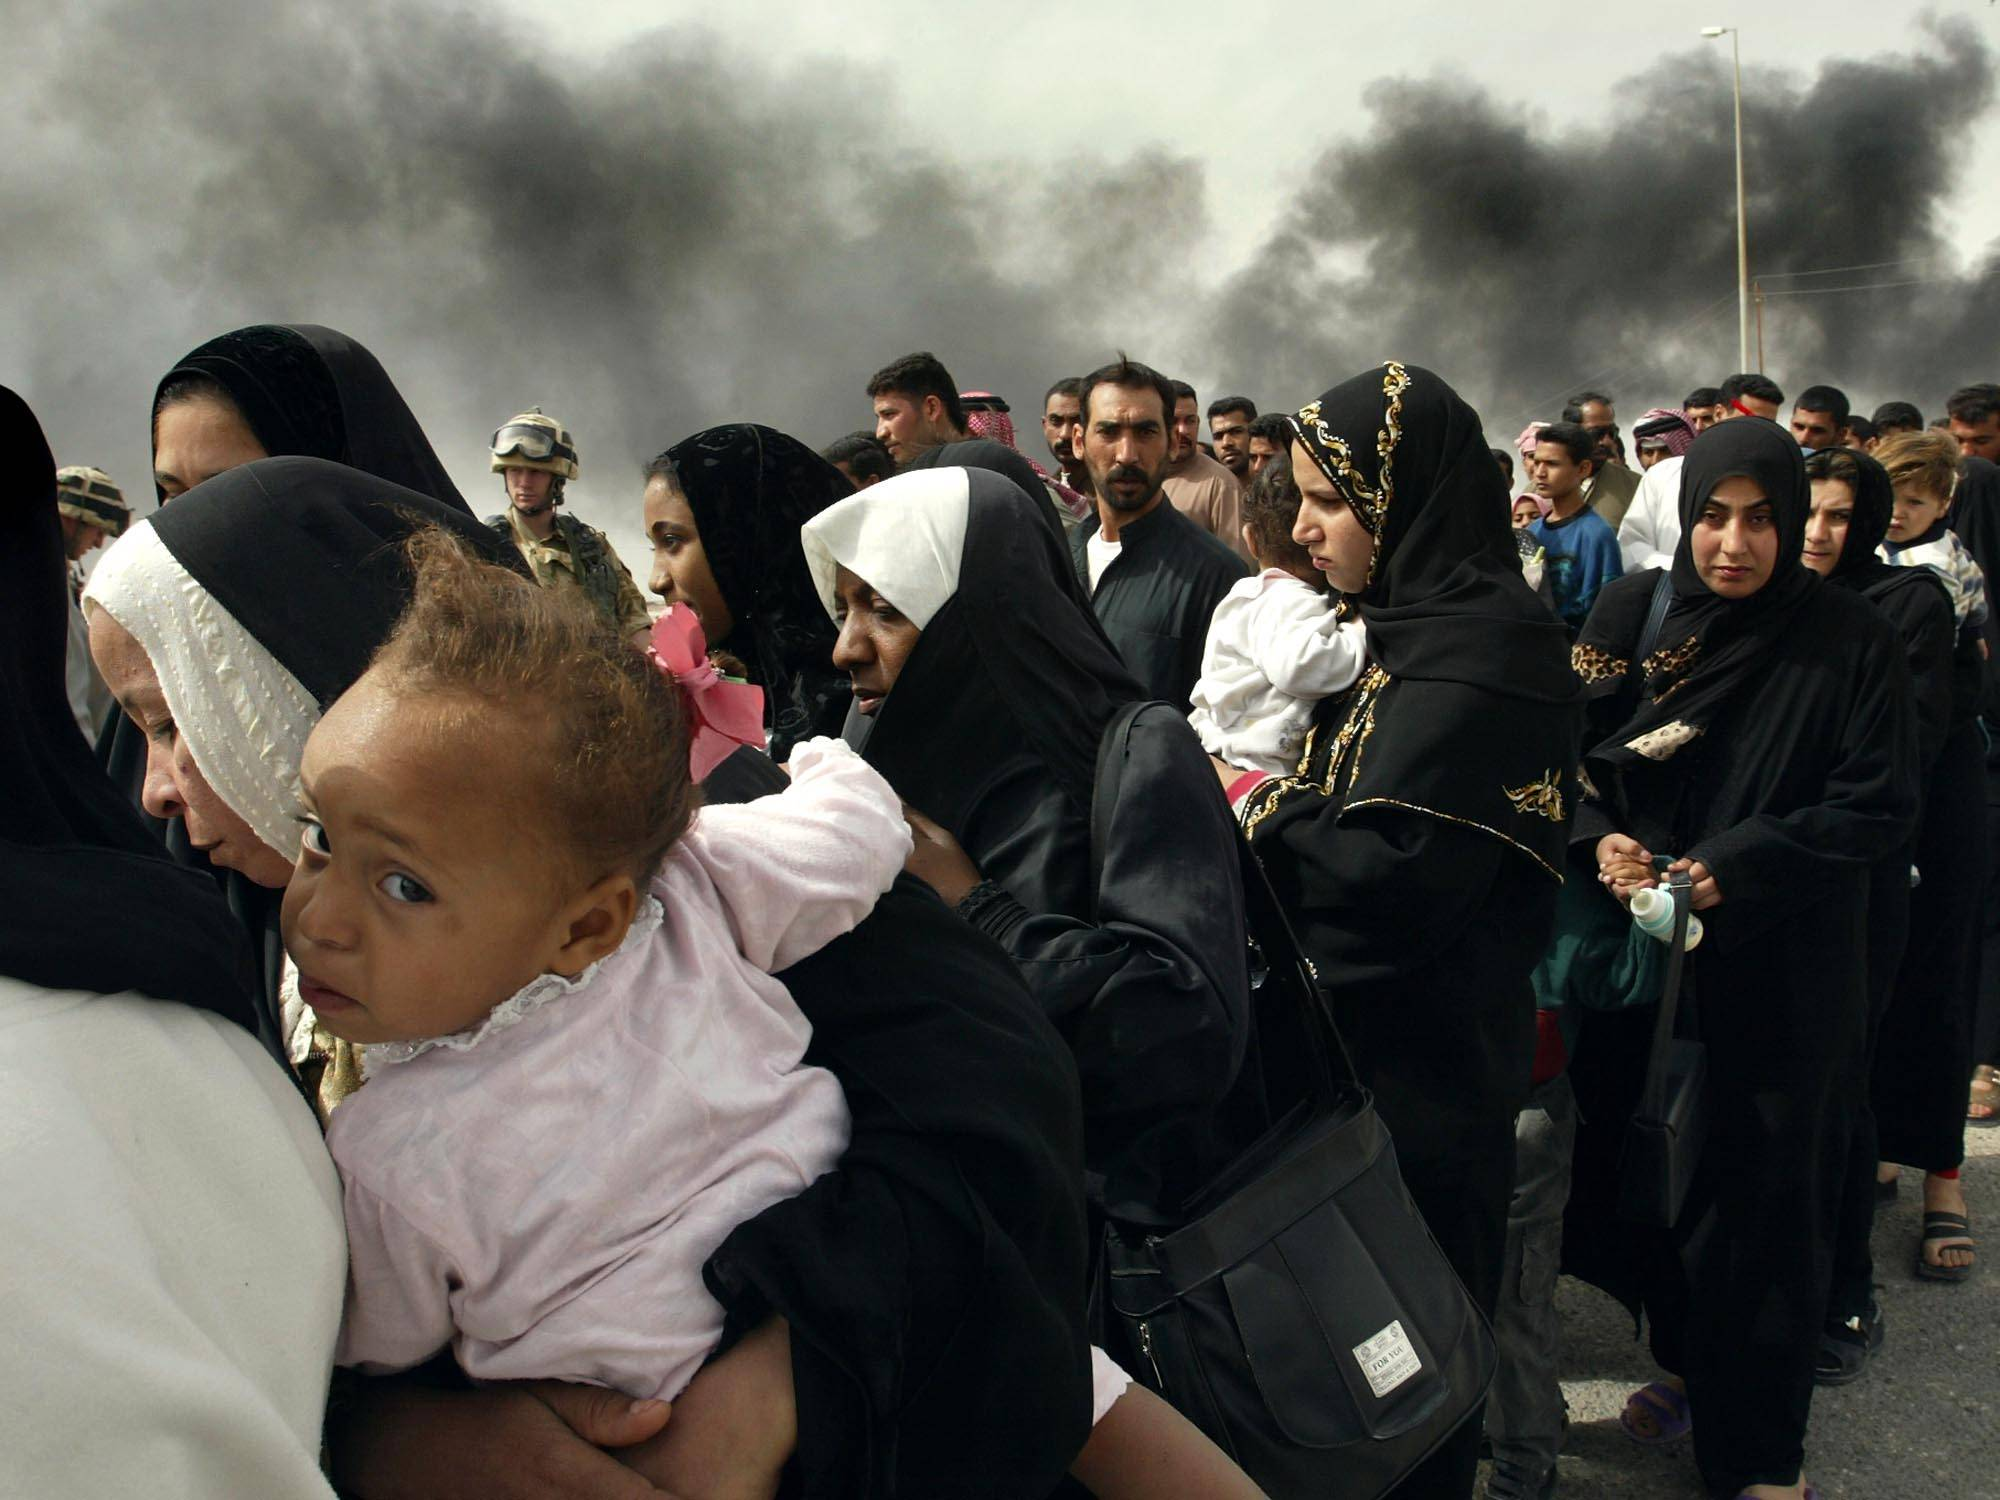 In this Sunday, March 30, 2003 file photo made by Associated Press photographer Anja Niedringhaus, Iraqi women line up for a security check by British soldiers on the outskirts of Basra, as they try to flee from this southern Iraqi town.